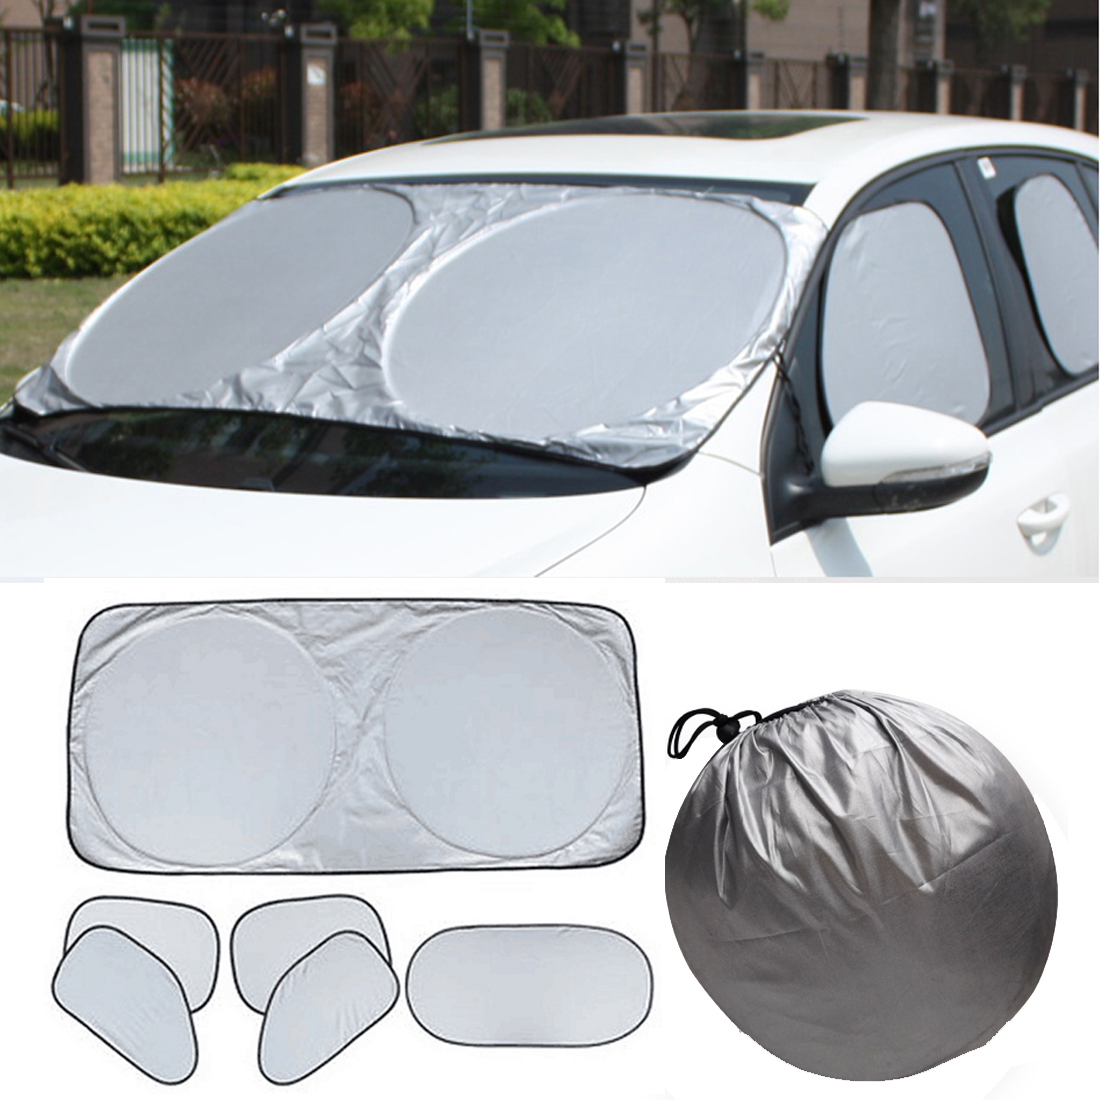 6pcs Folding Silvering Reflective Car Windshield Window Sun Shade Visor Shield Cover Suction Cup Car Sunshield Sunscreen Curtain